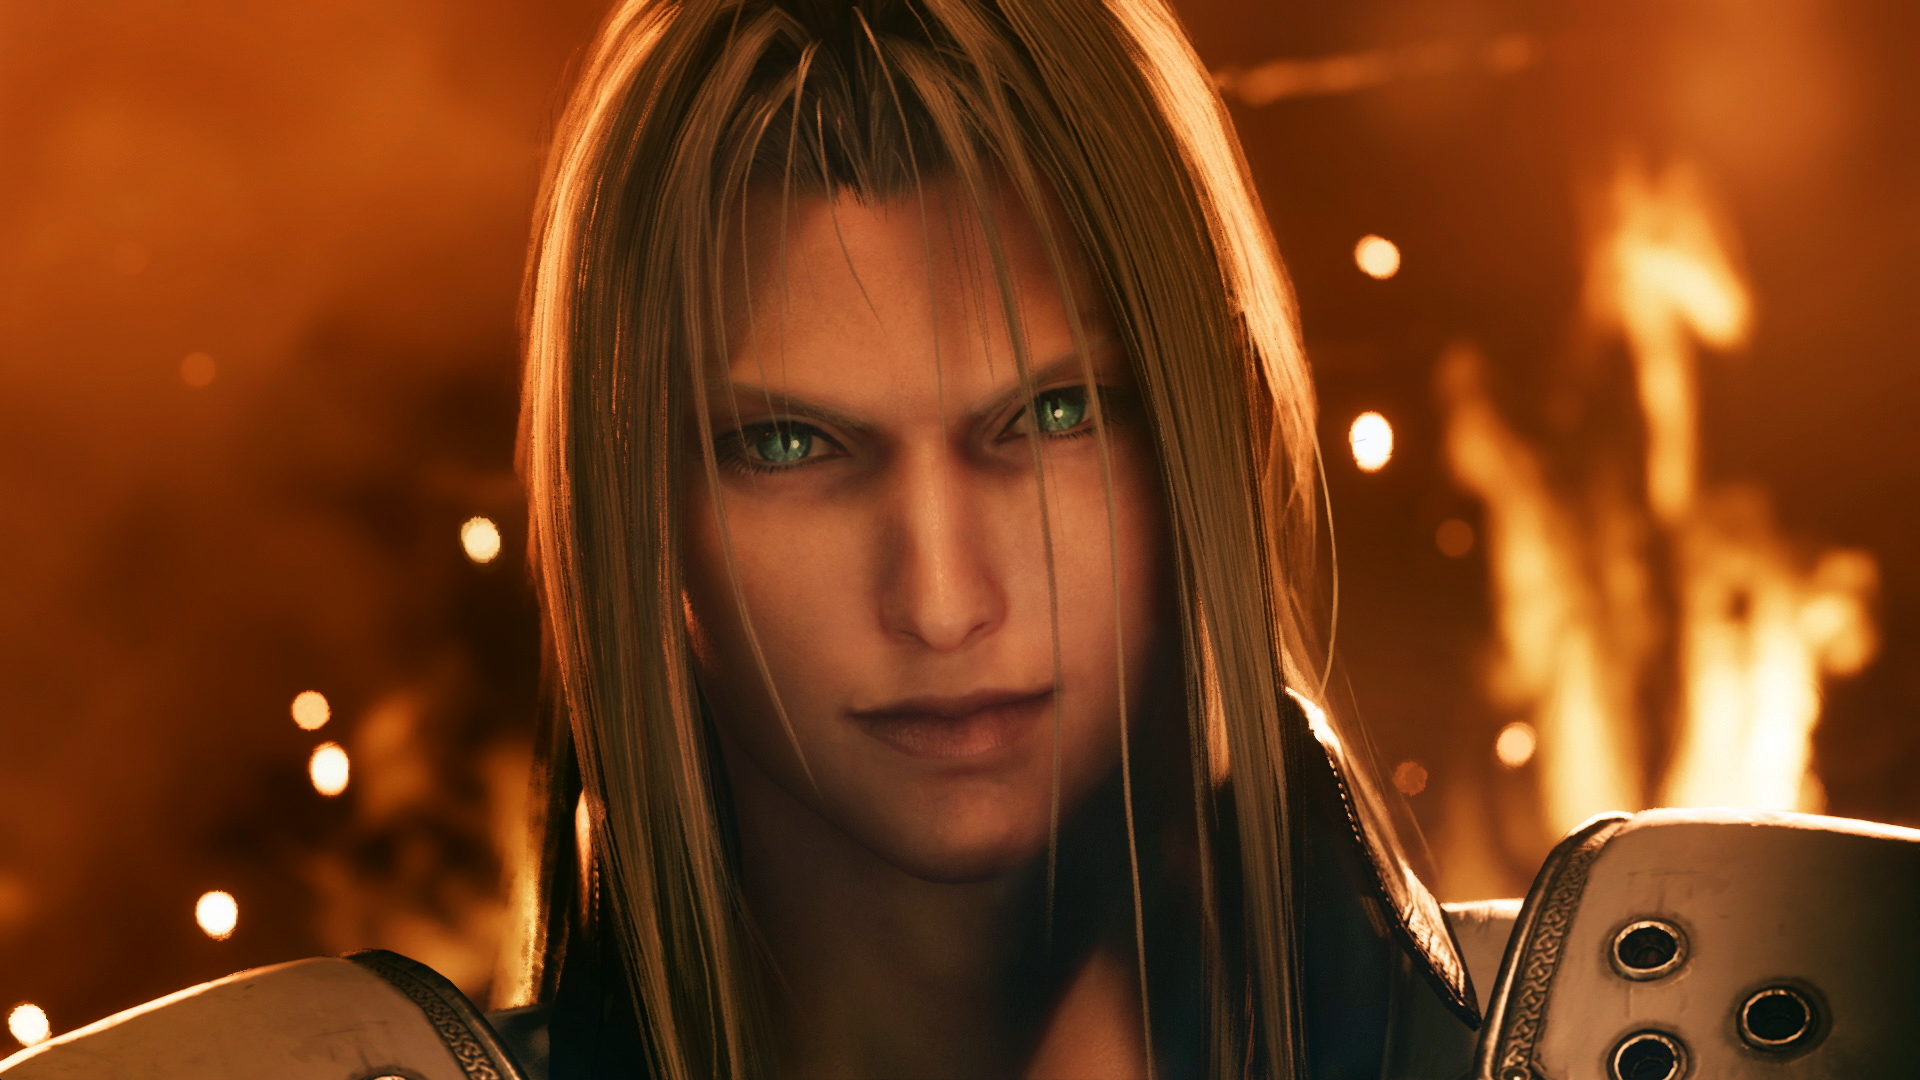 I Hope Final Fantasy 7 Remake Doesn T Ruin What Made Sephiroth Such A Great Villain Mystique Vg247